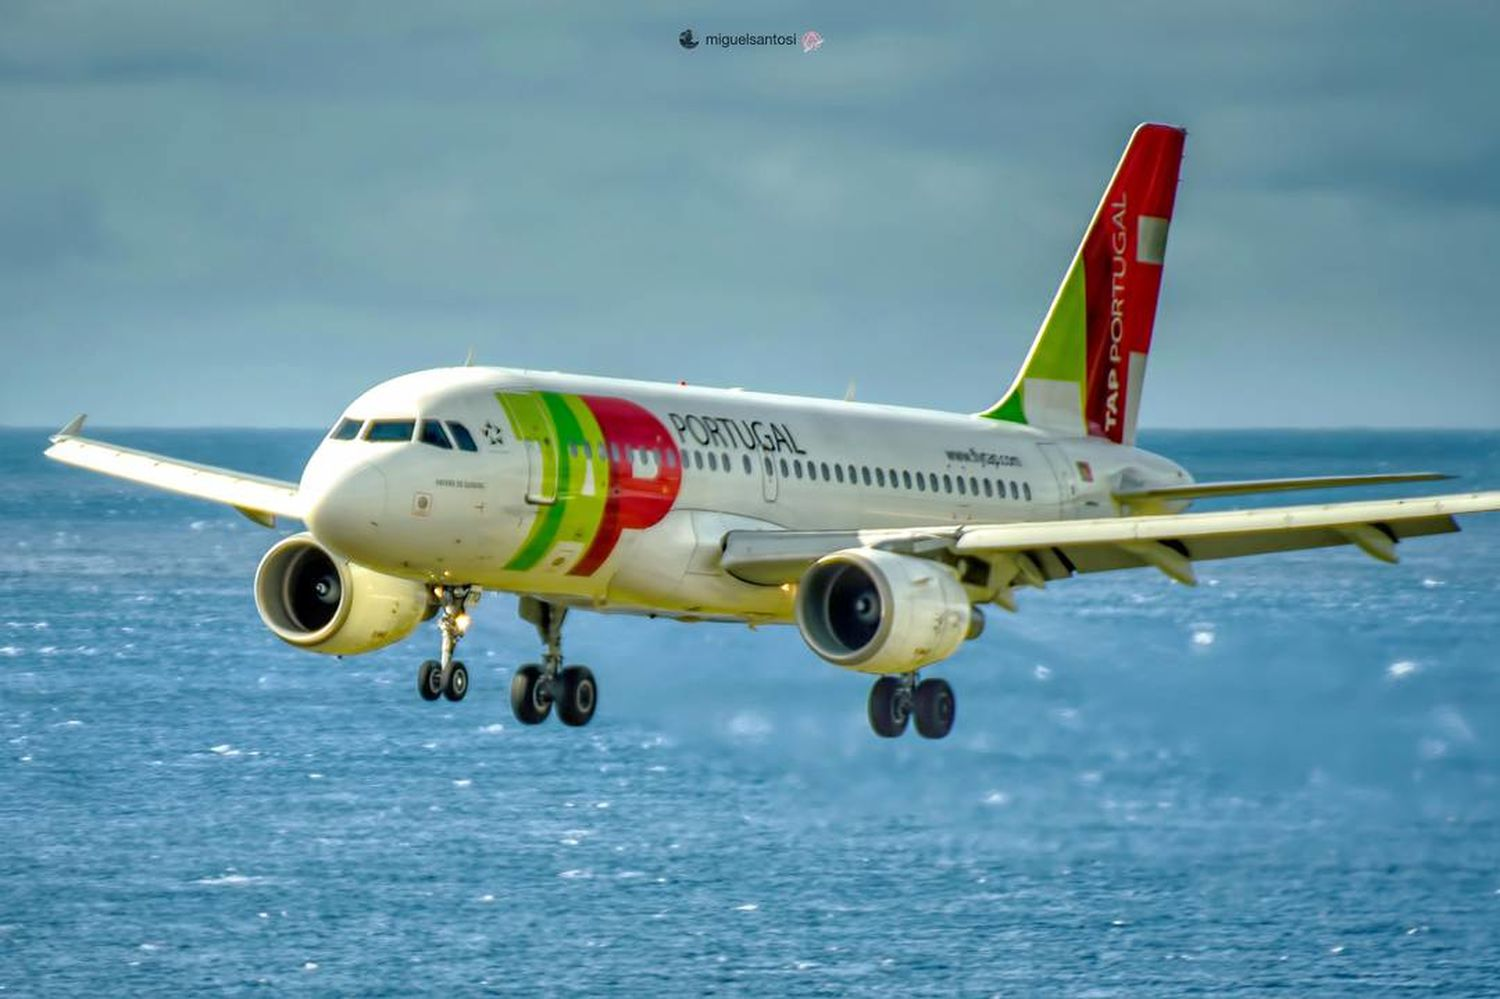 Aviationaddict Aviation Aviationphotography Aviationlovers Aviationgeek AirPlane ✈ Tap Tapportugal Spotting Saomiguelisland Airplane Air Vehicle Transportation Airport Airport Runway Commercial Airplane Engine Jet Engine Aircraft Wing Flying